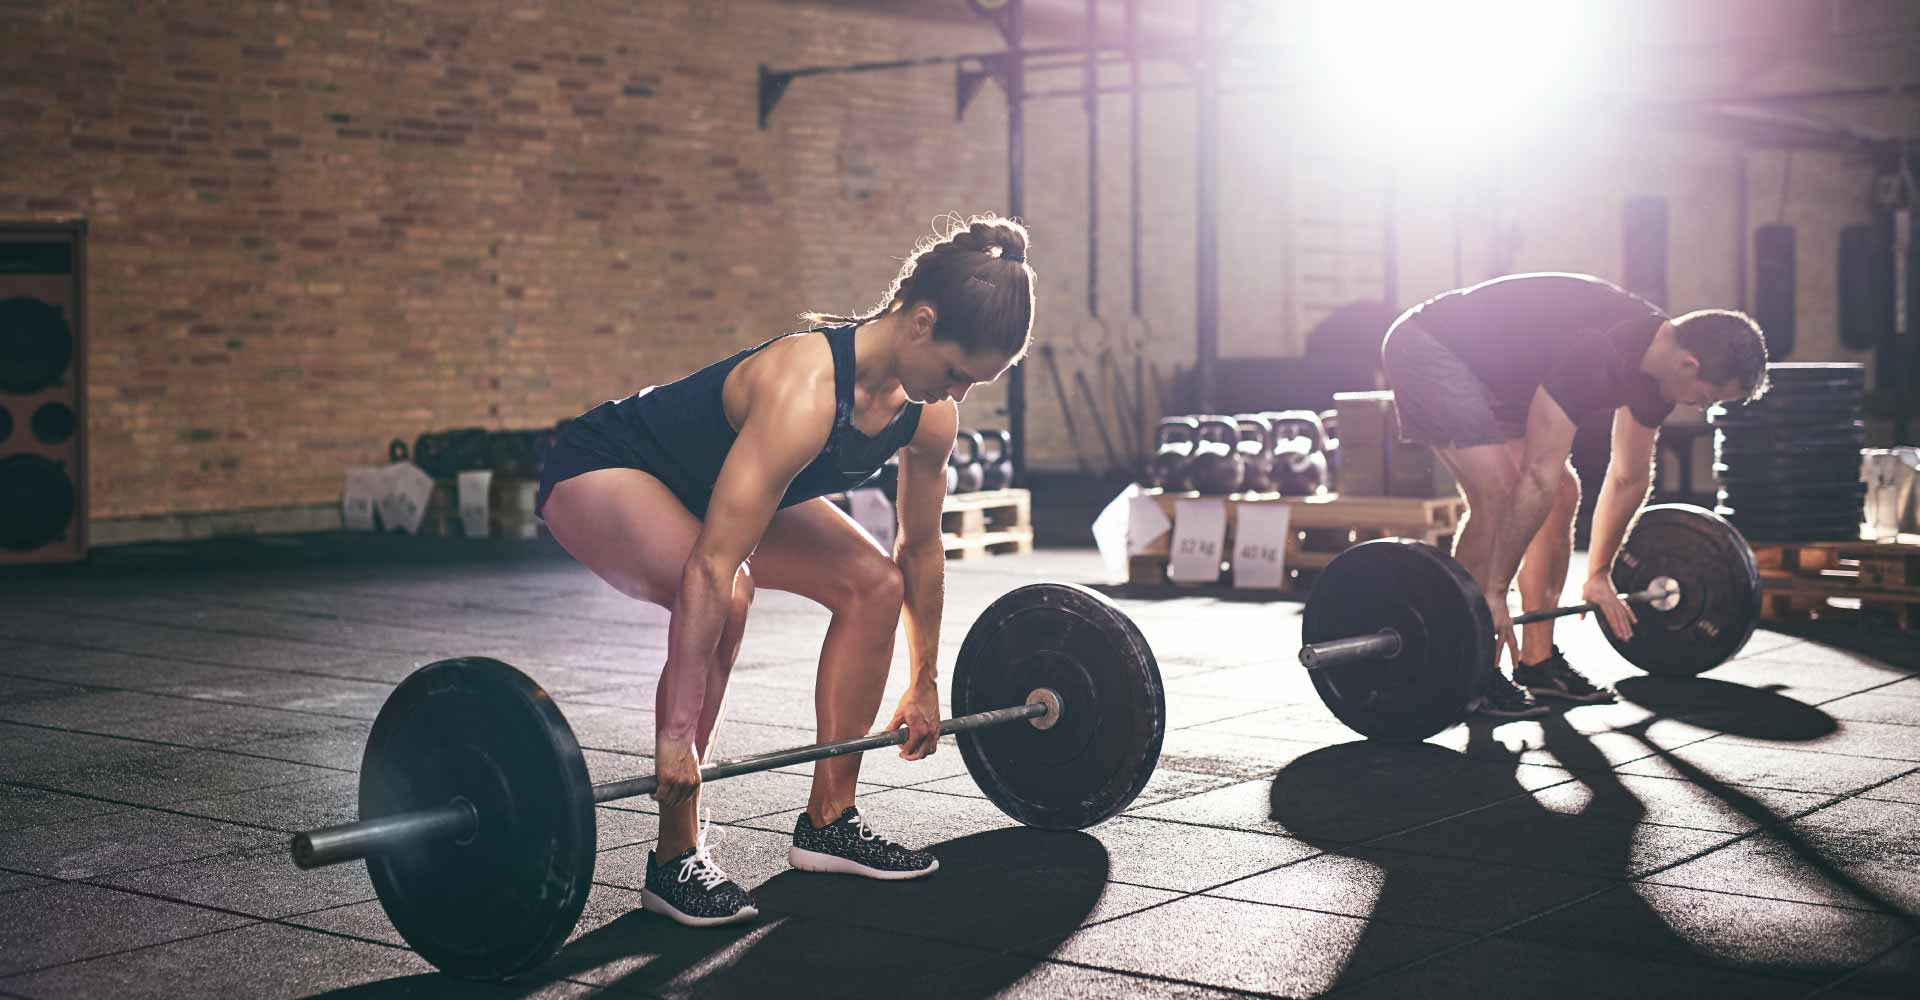 The Five Basic Leg Exercises You Need To Do For Power and Strength